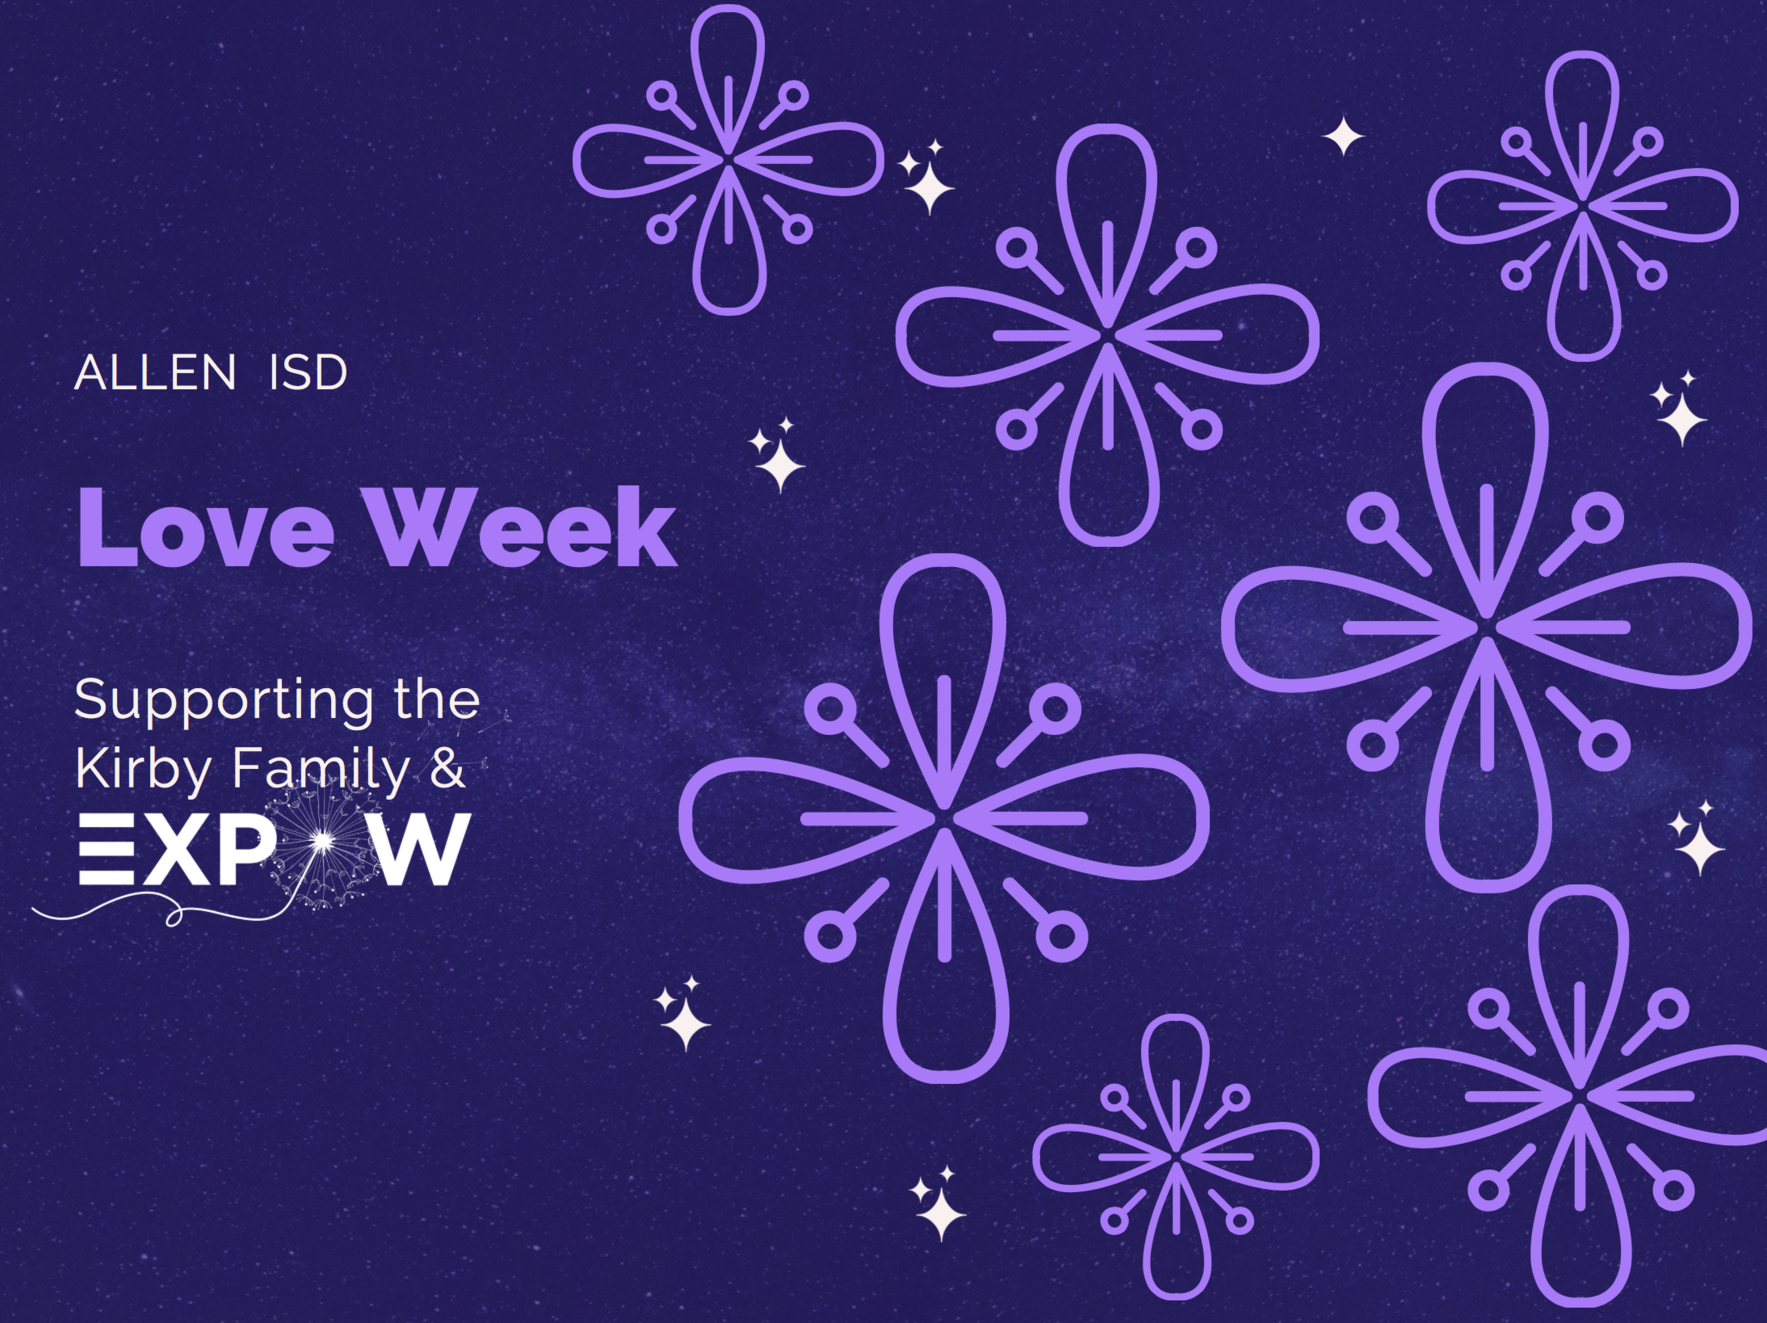 Supporting Allen ISD Love Week   image